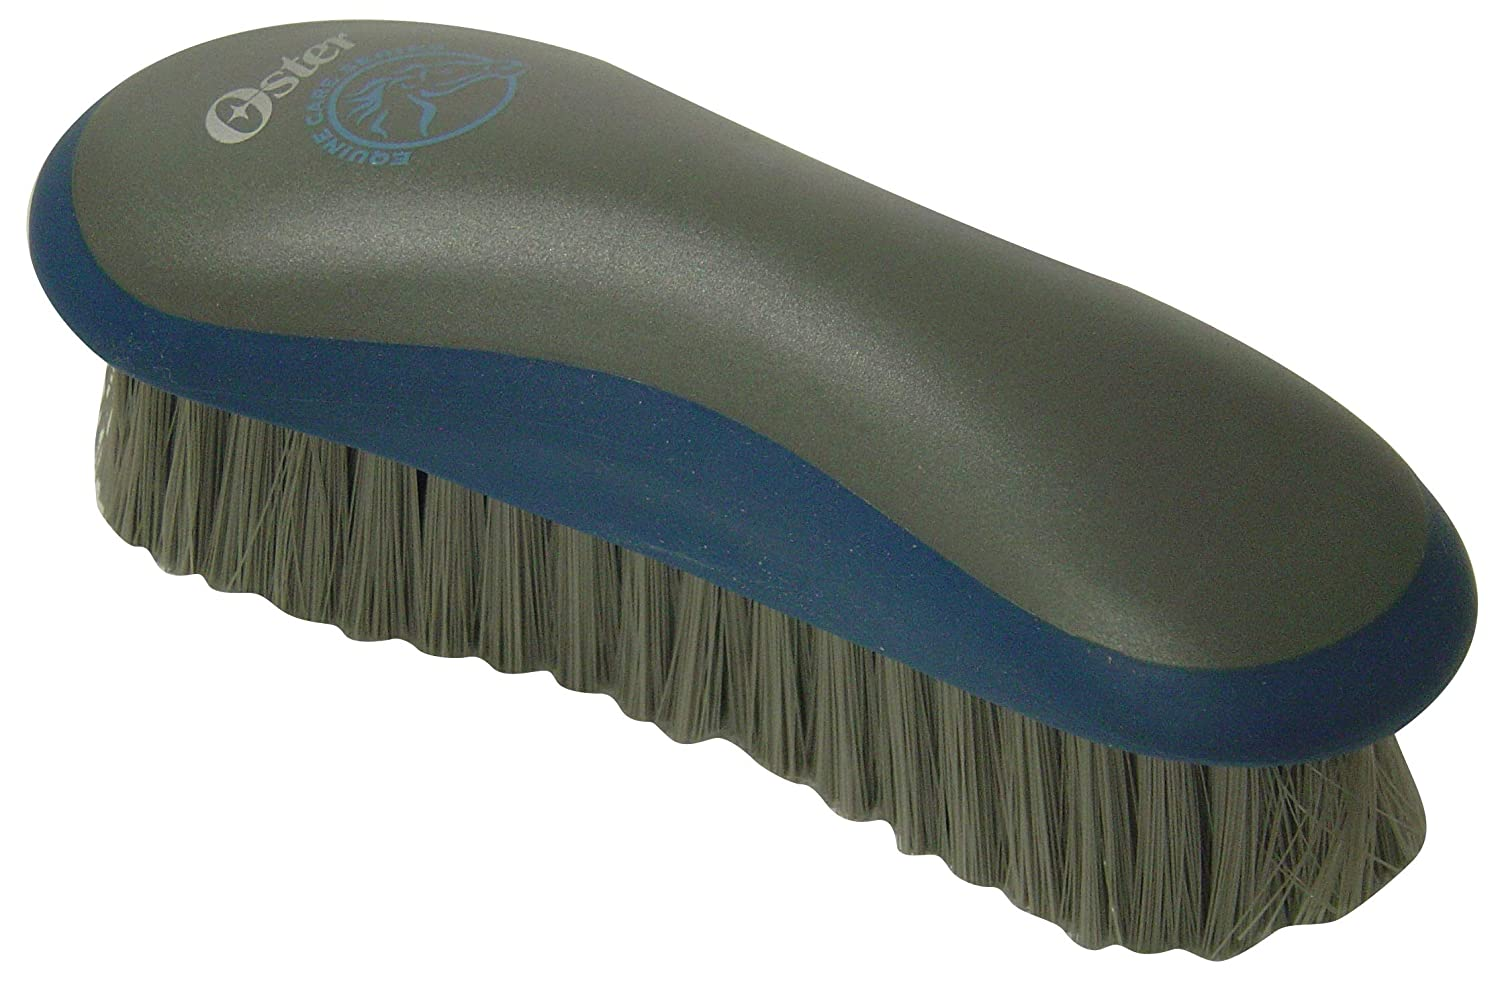 bluee One Size bluee One Size Oster Equine Care Series Grooming Brush, Medium Bristle, Synthetic, bluee